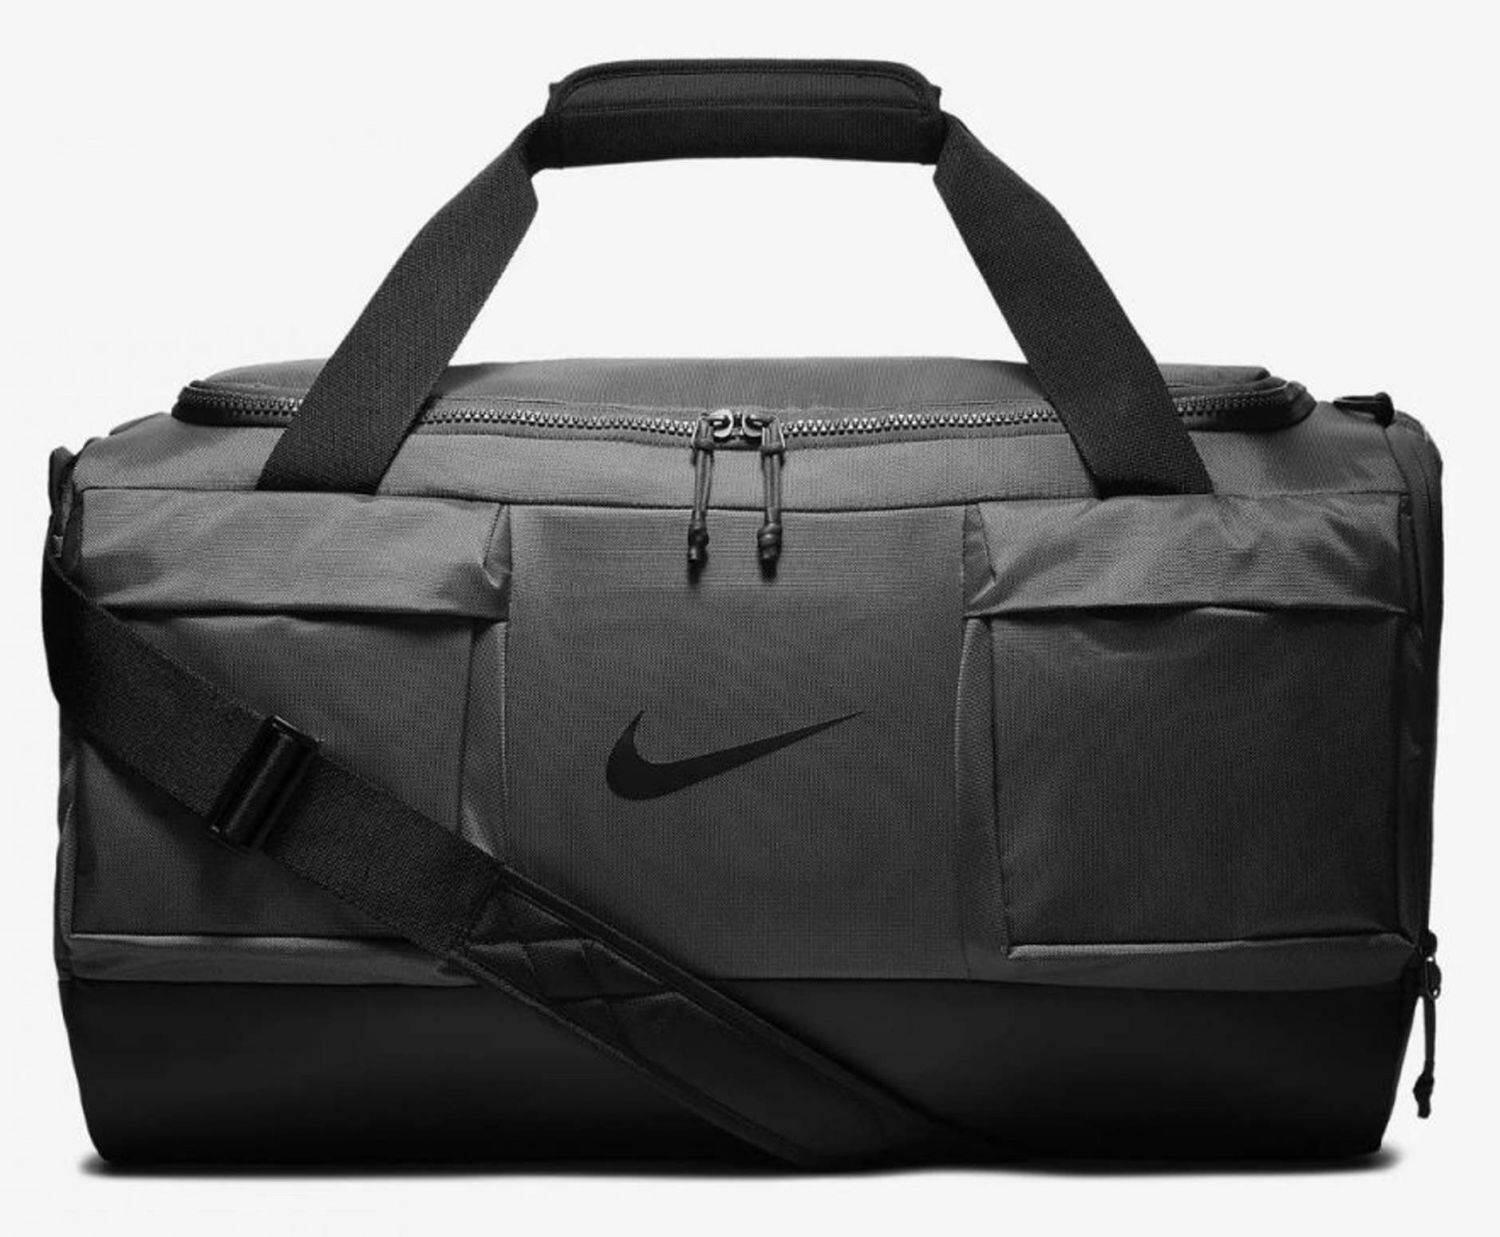 nike-vapor-power-m-duffel-trainingstasche-farbe-021-dark-grey-black-black-